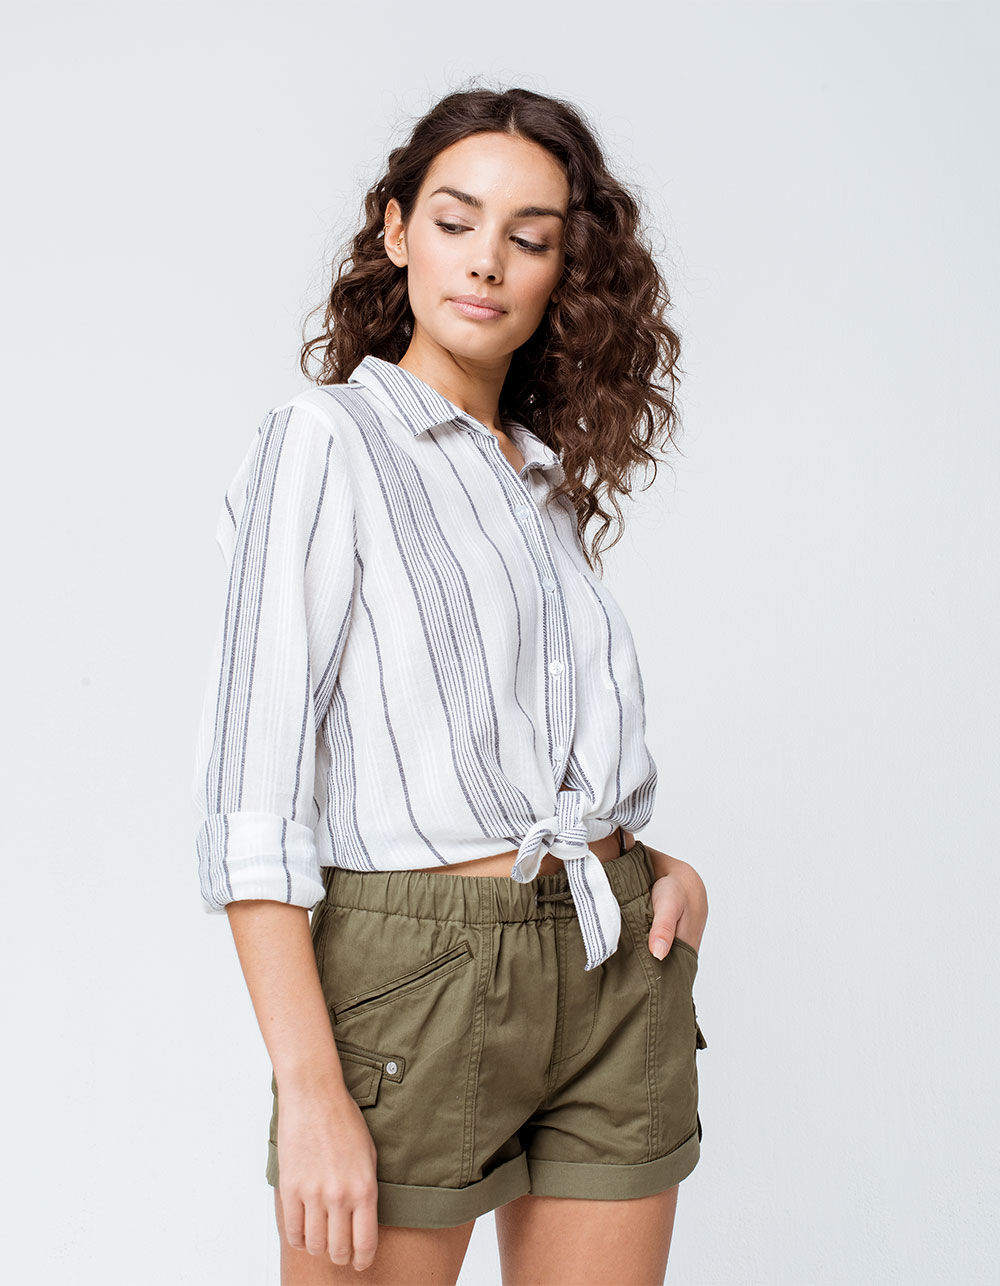 SKY AND SPARROW Textured Stripe Button Front Top